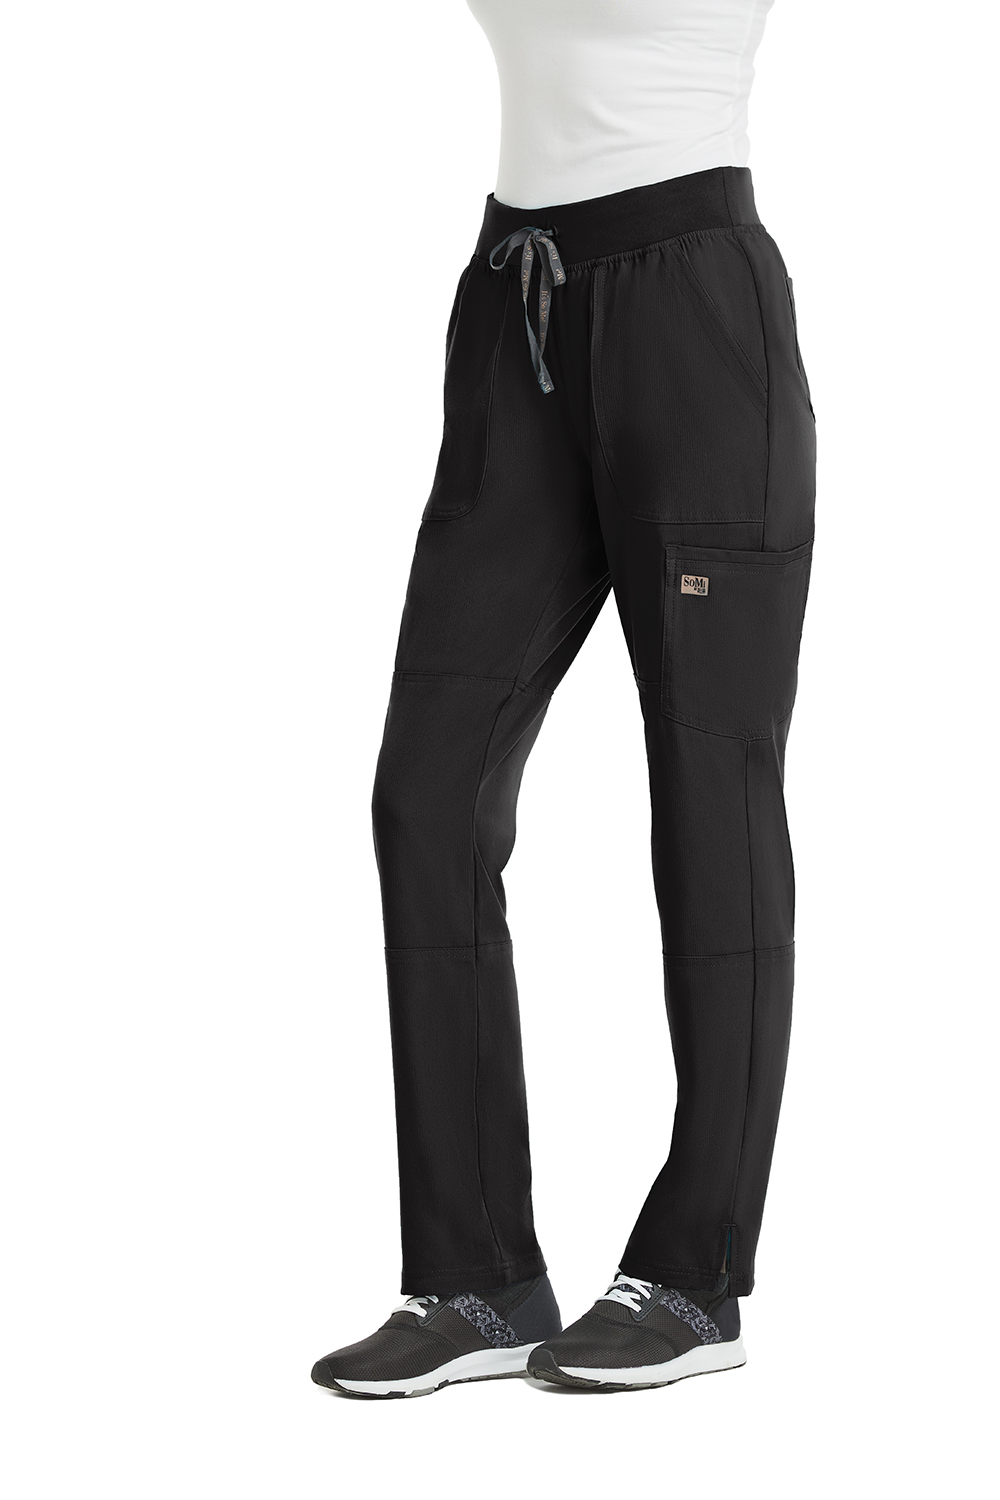 SoMi by AUW - Women's Knit Waistband Tapered Leg Pant-SoMi